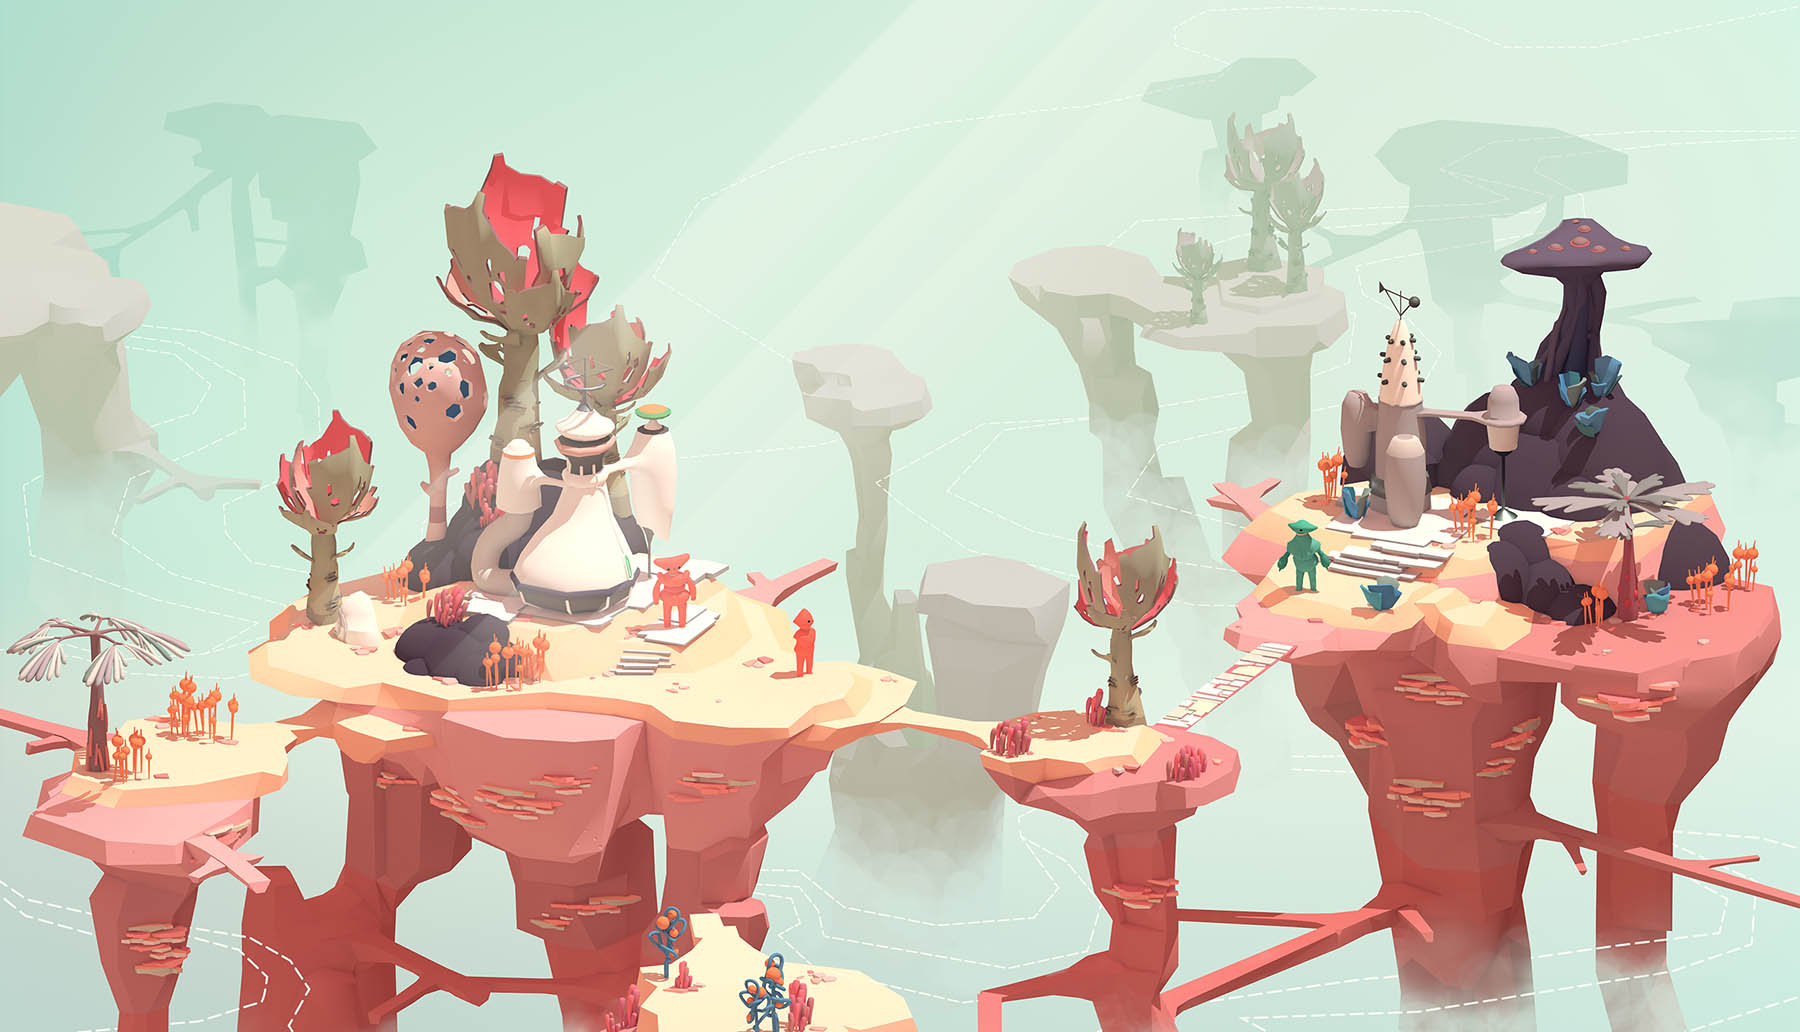 Sandcastles - In this playful take on VR gaming you attempt to restore order to a world that is spiralling out of control around you.